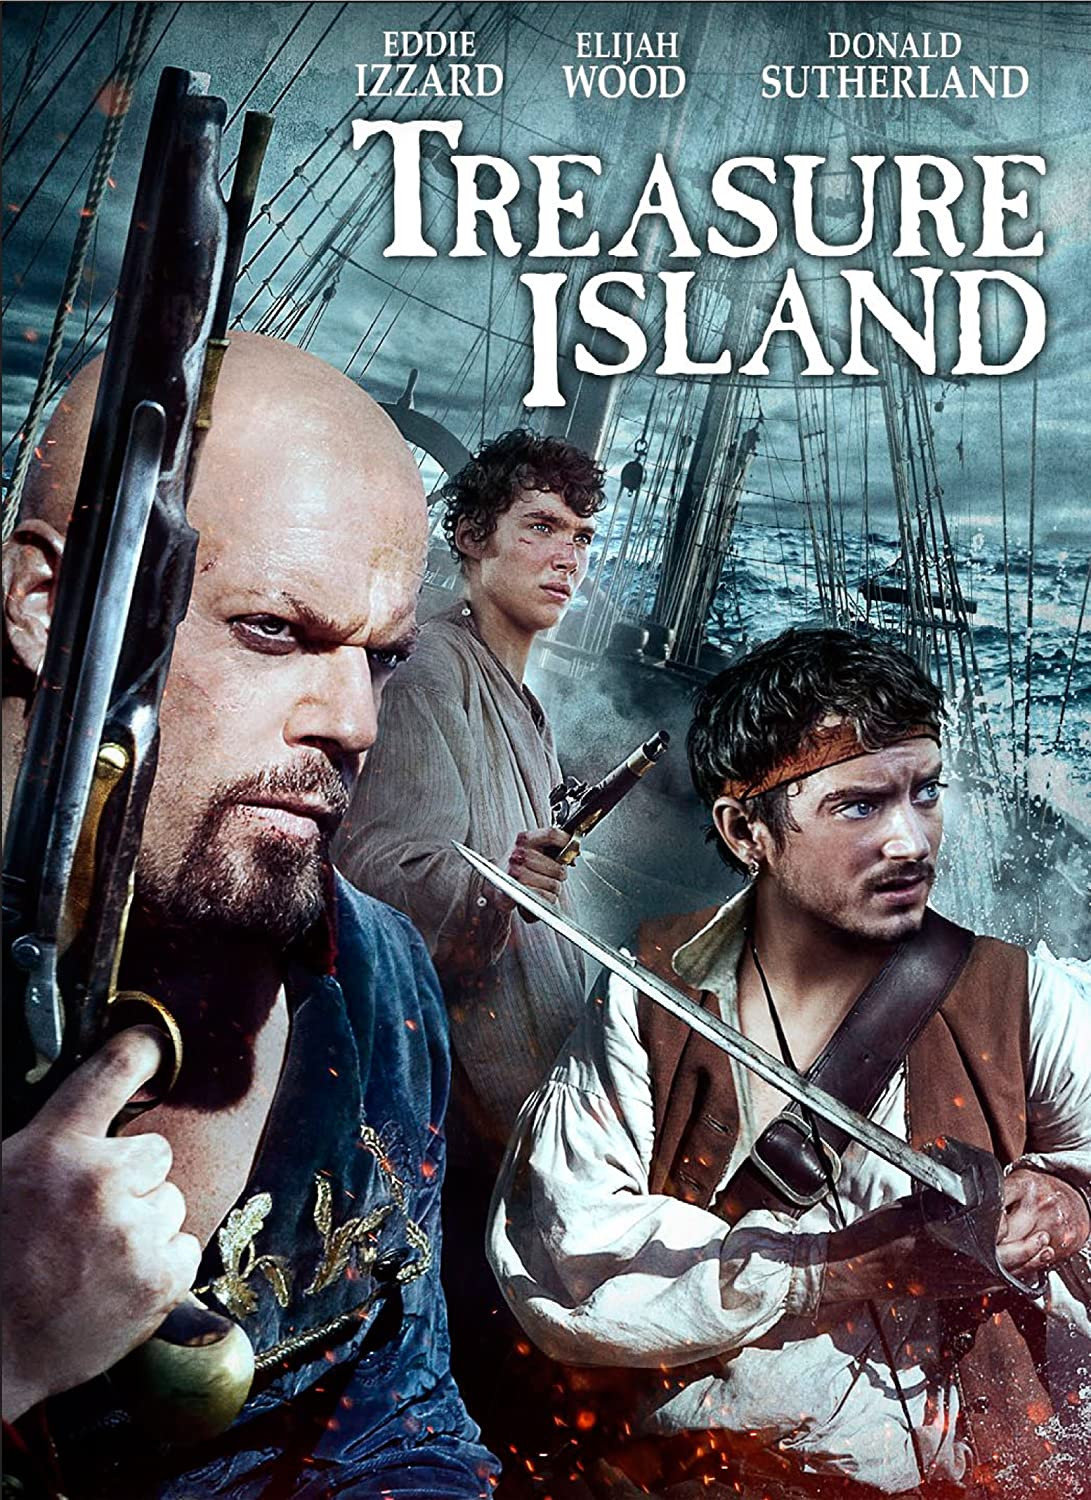 Amazon.com: Treasure Island: Eddie Izzard, Toby Regbo ...